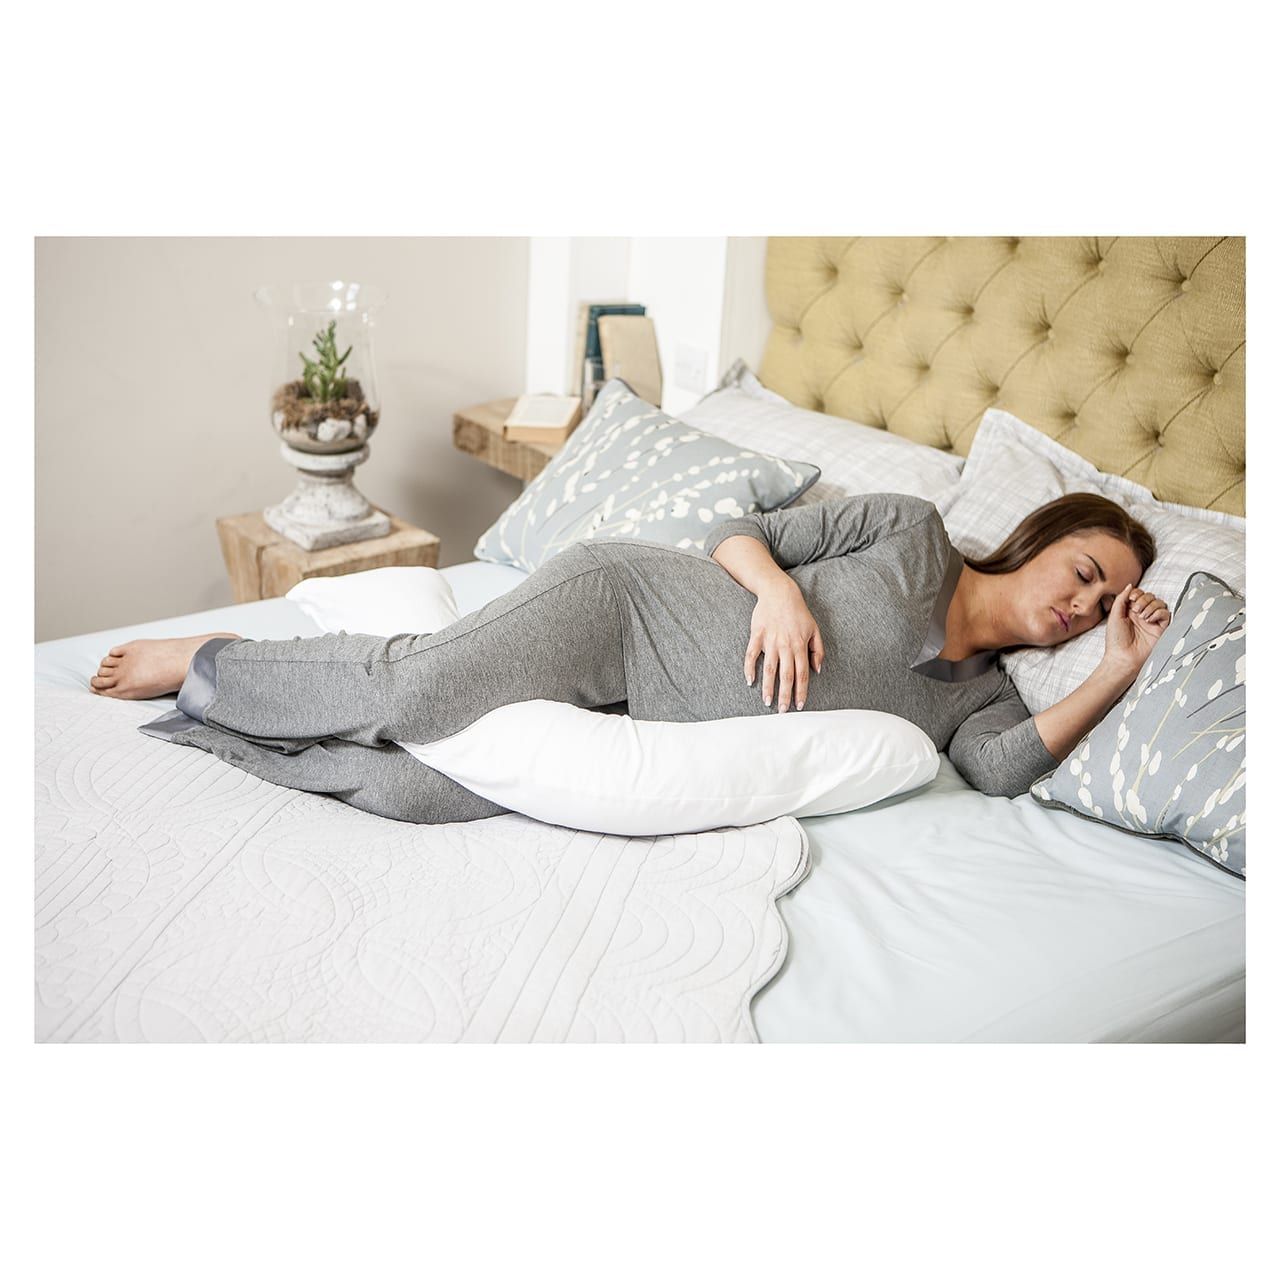 Dreamgenii Pillow – Floral Grey product image